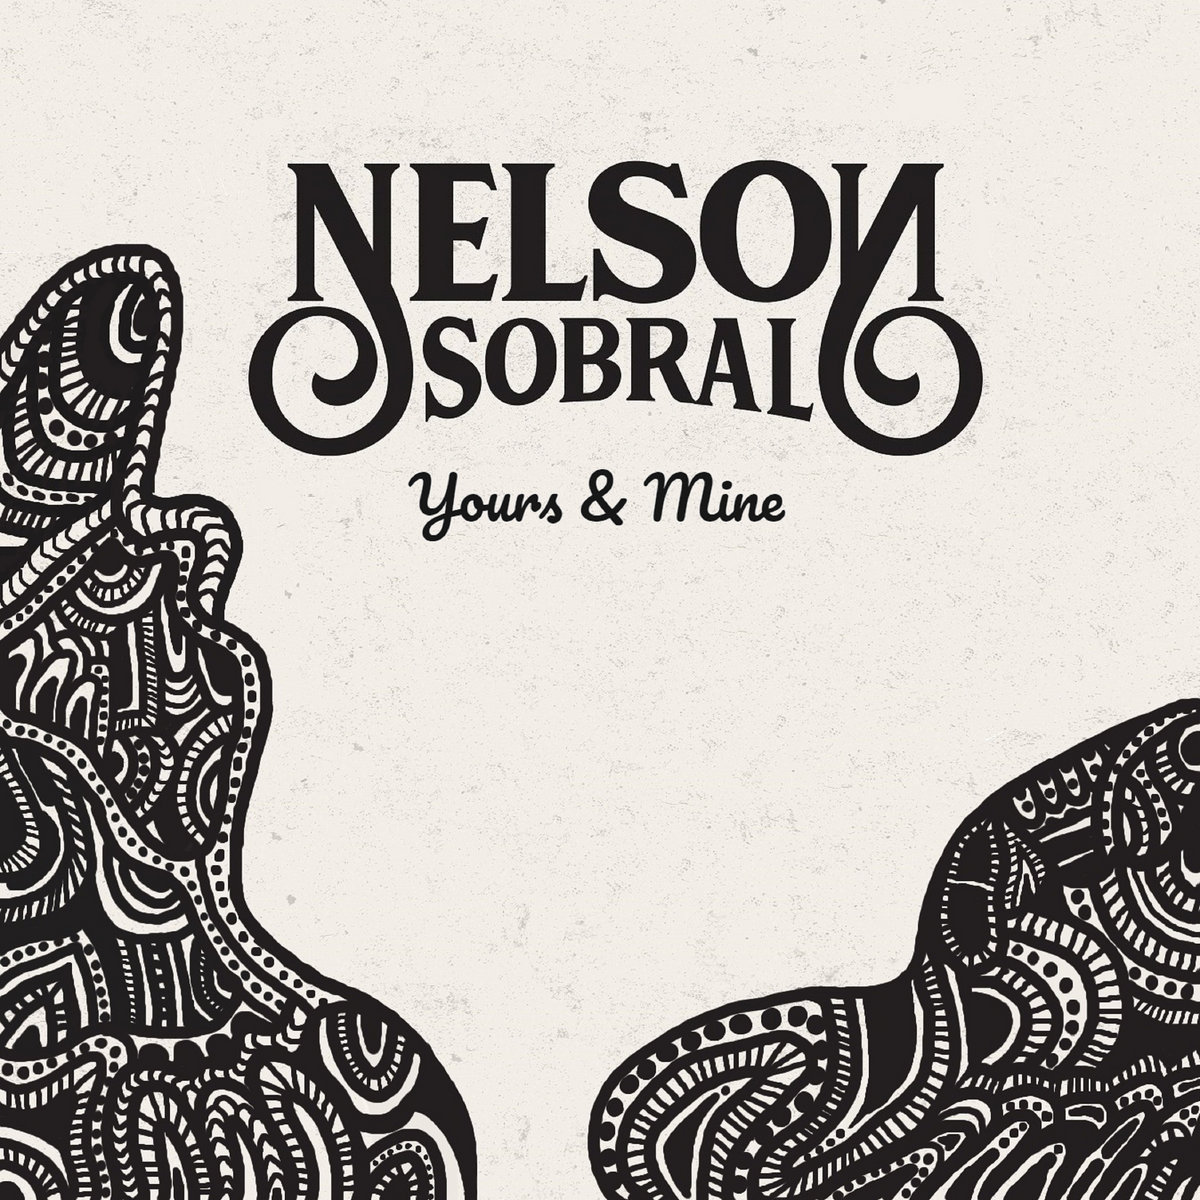 Yours & Mine by Nelson Sobral